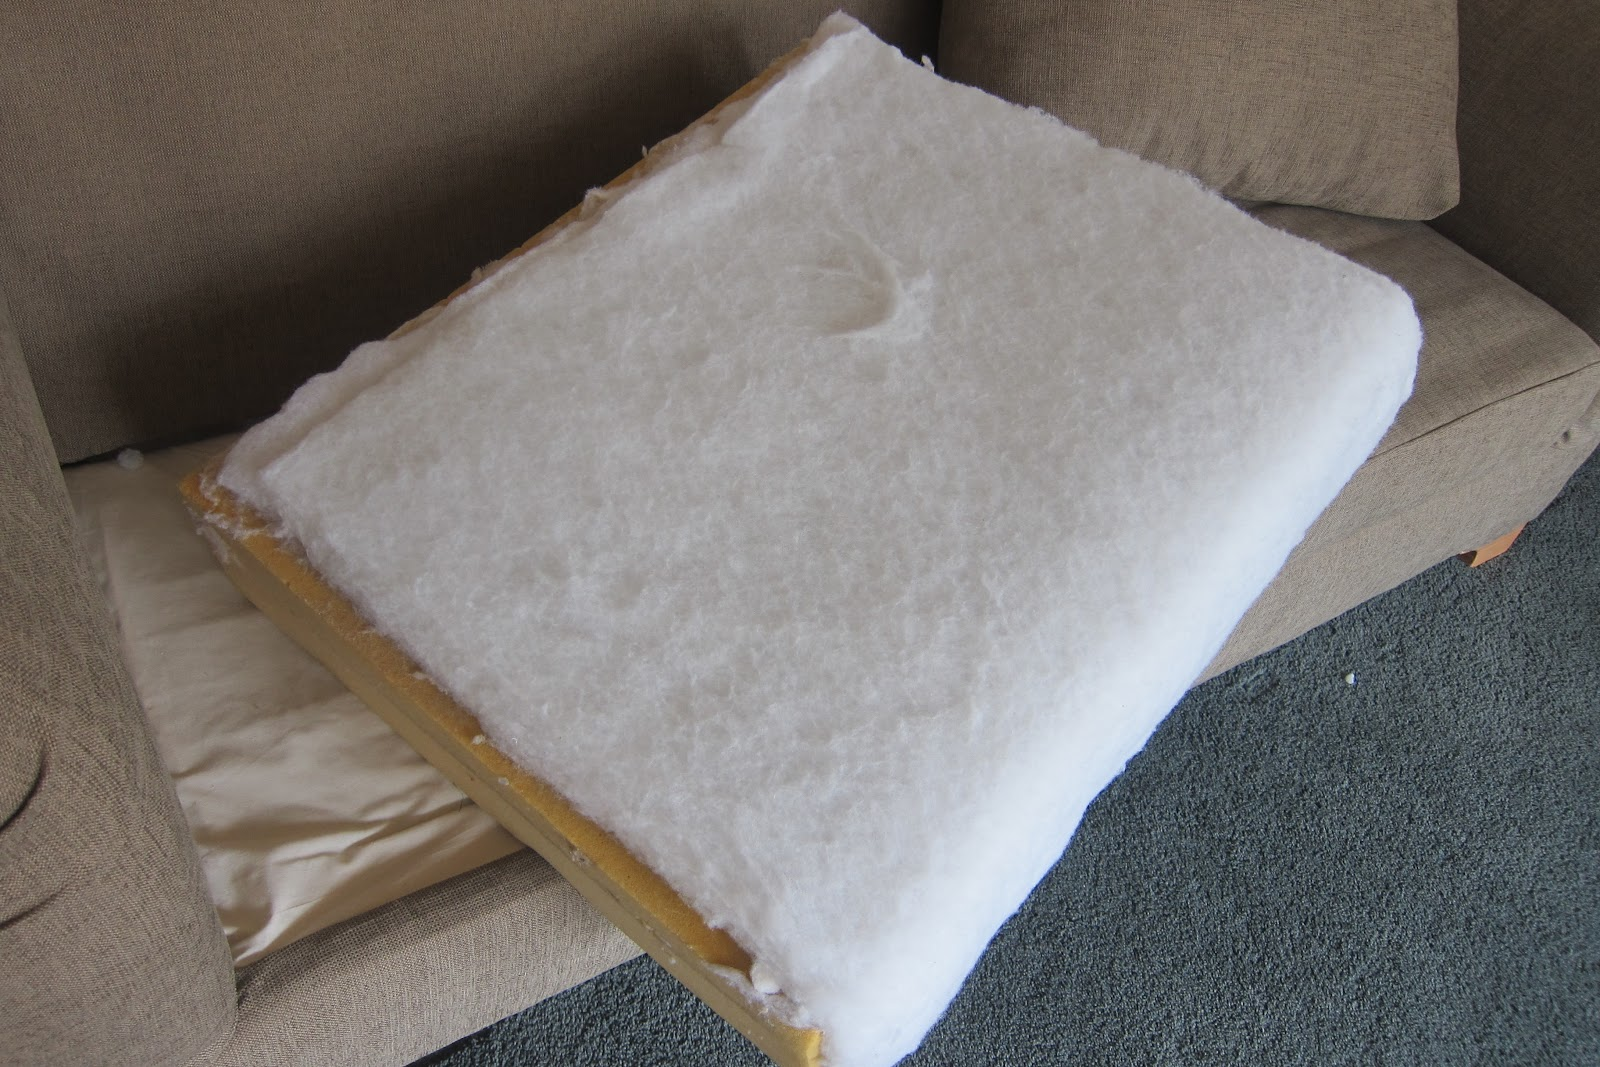 how to make sofa cushions harder goetz replica do it yourself divas diy strip fabric from a couch and